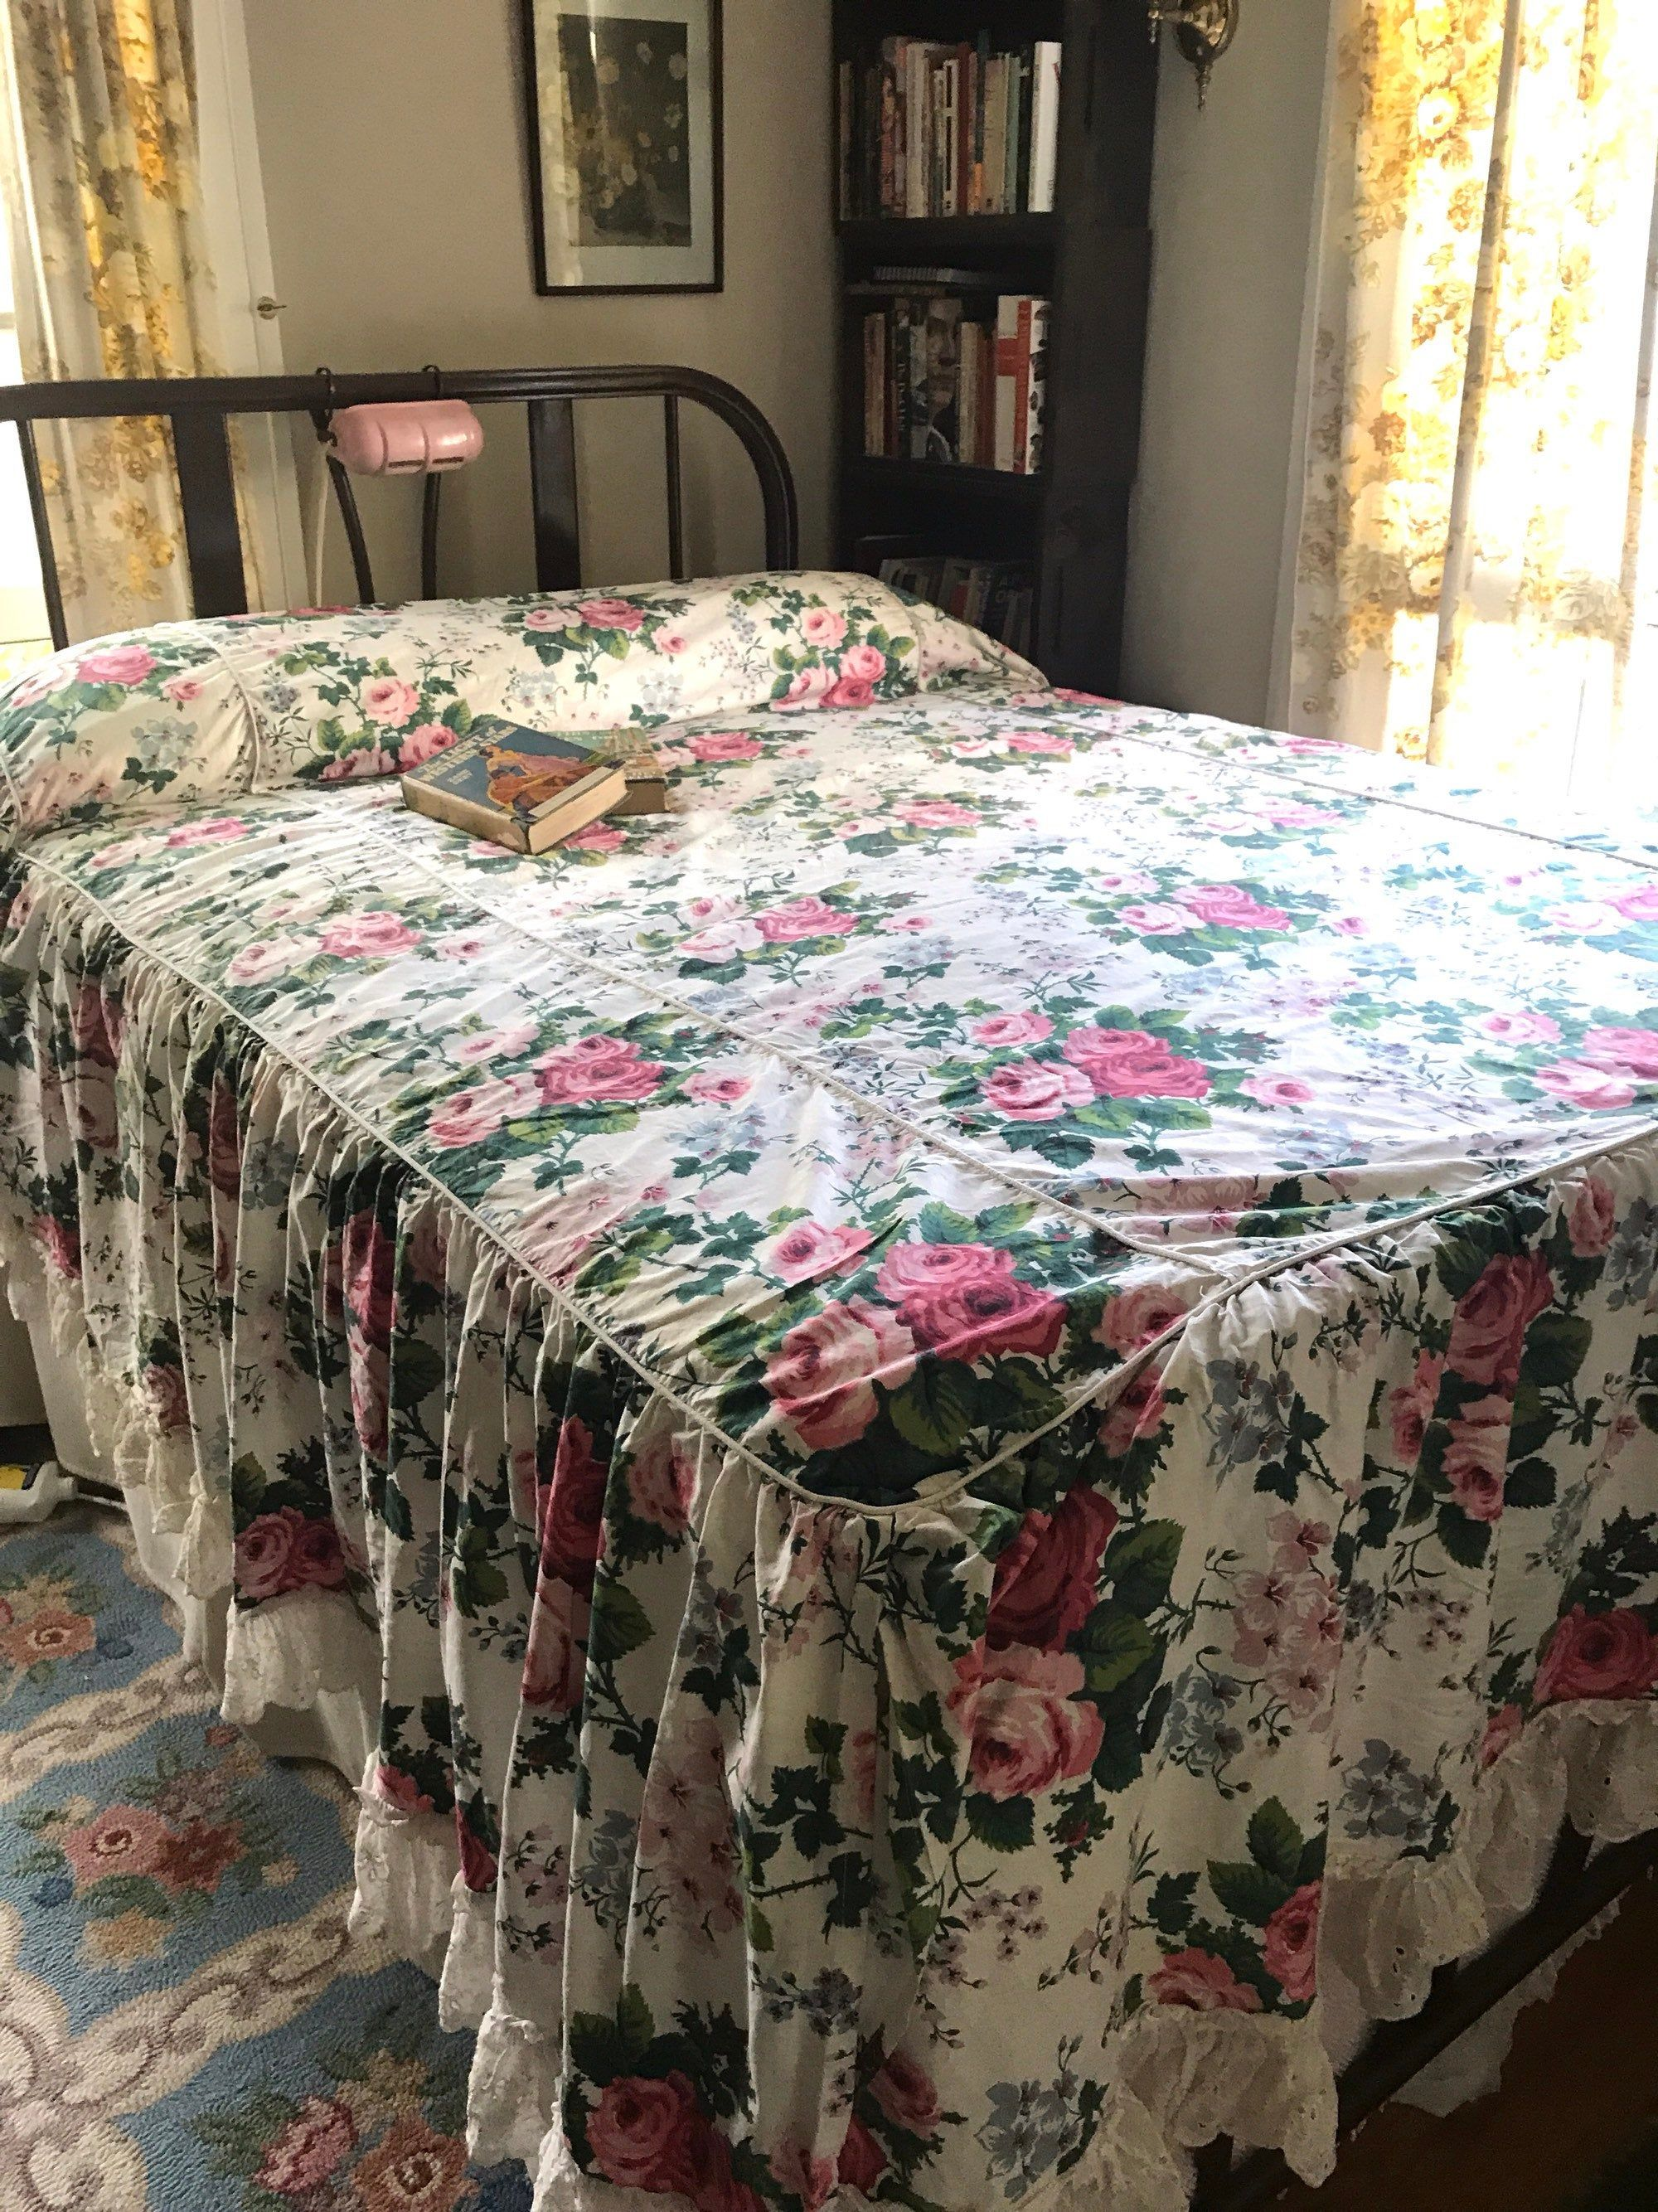 Vintage 1950s Cotton Floral Bedspread Full Double Size Big Rose Print Ruffles Eyelet Chintz Home Decor Vintage Bedding Vintage Bed Floral Bedspread Home Decor